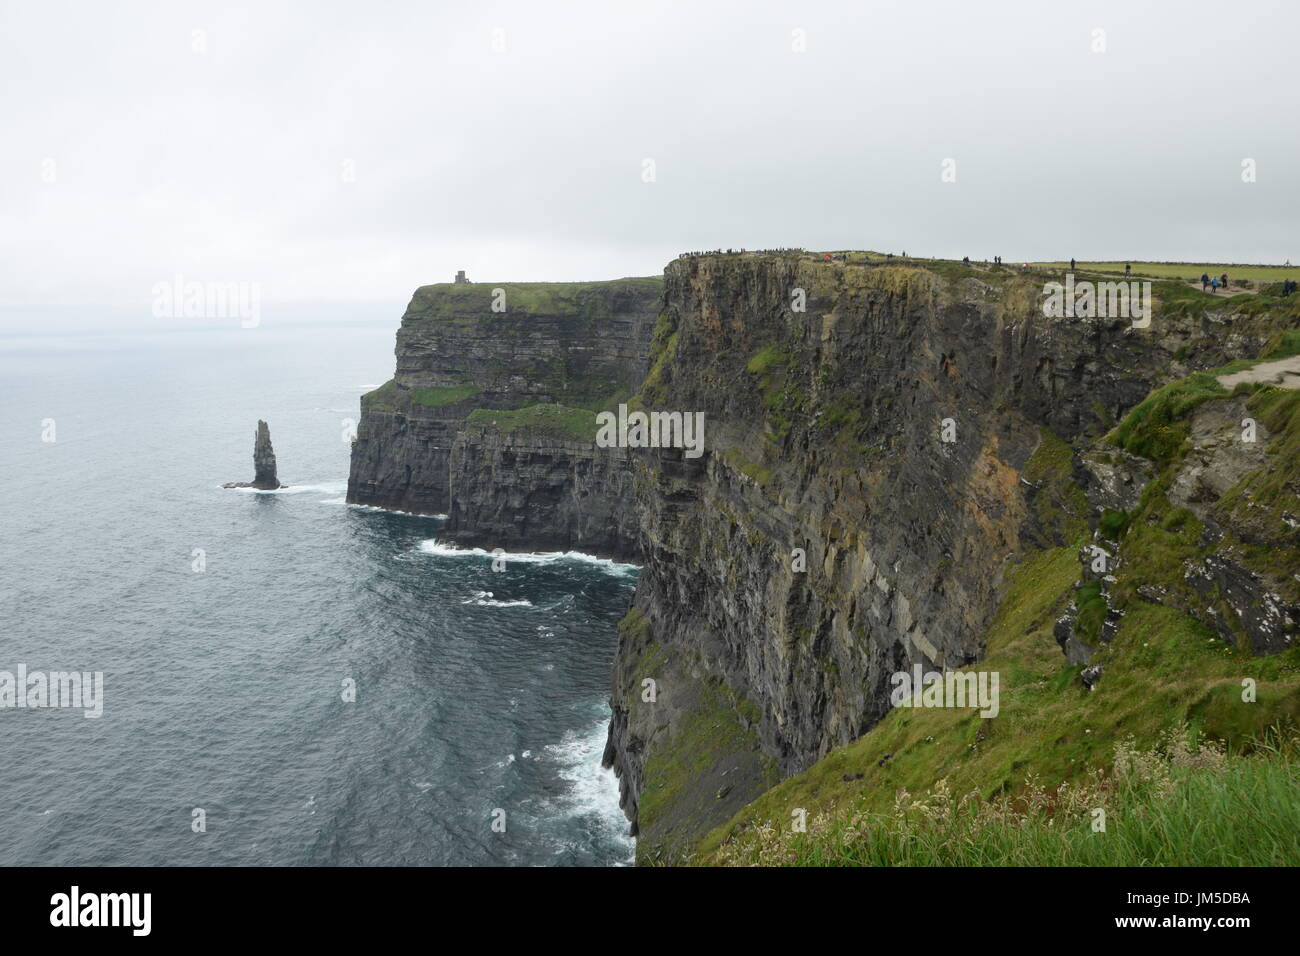 View of the Cliffs of Moher with O'Brien's Tower and Branaunmore sea stack in the County Clare, west Ireland - Stock Image